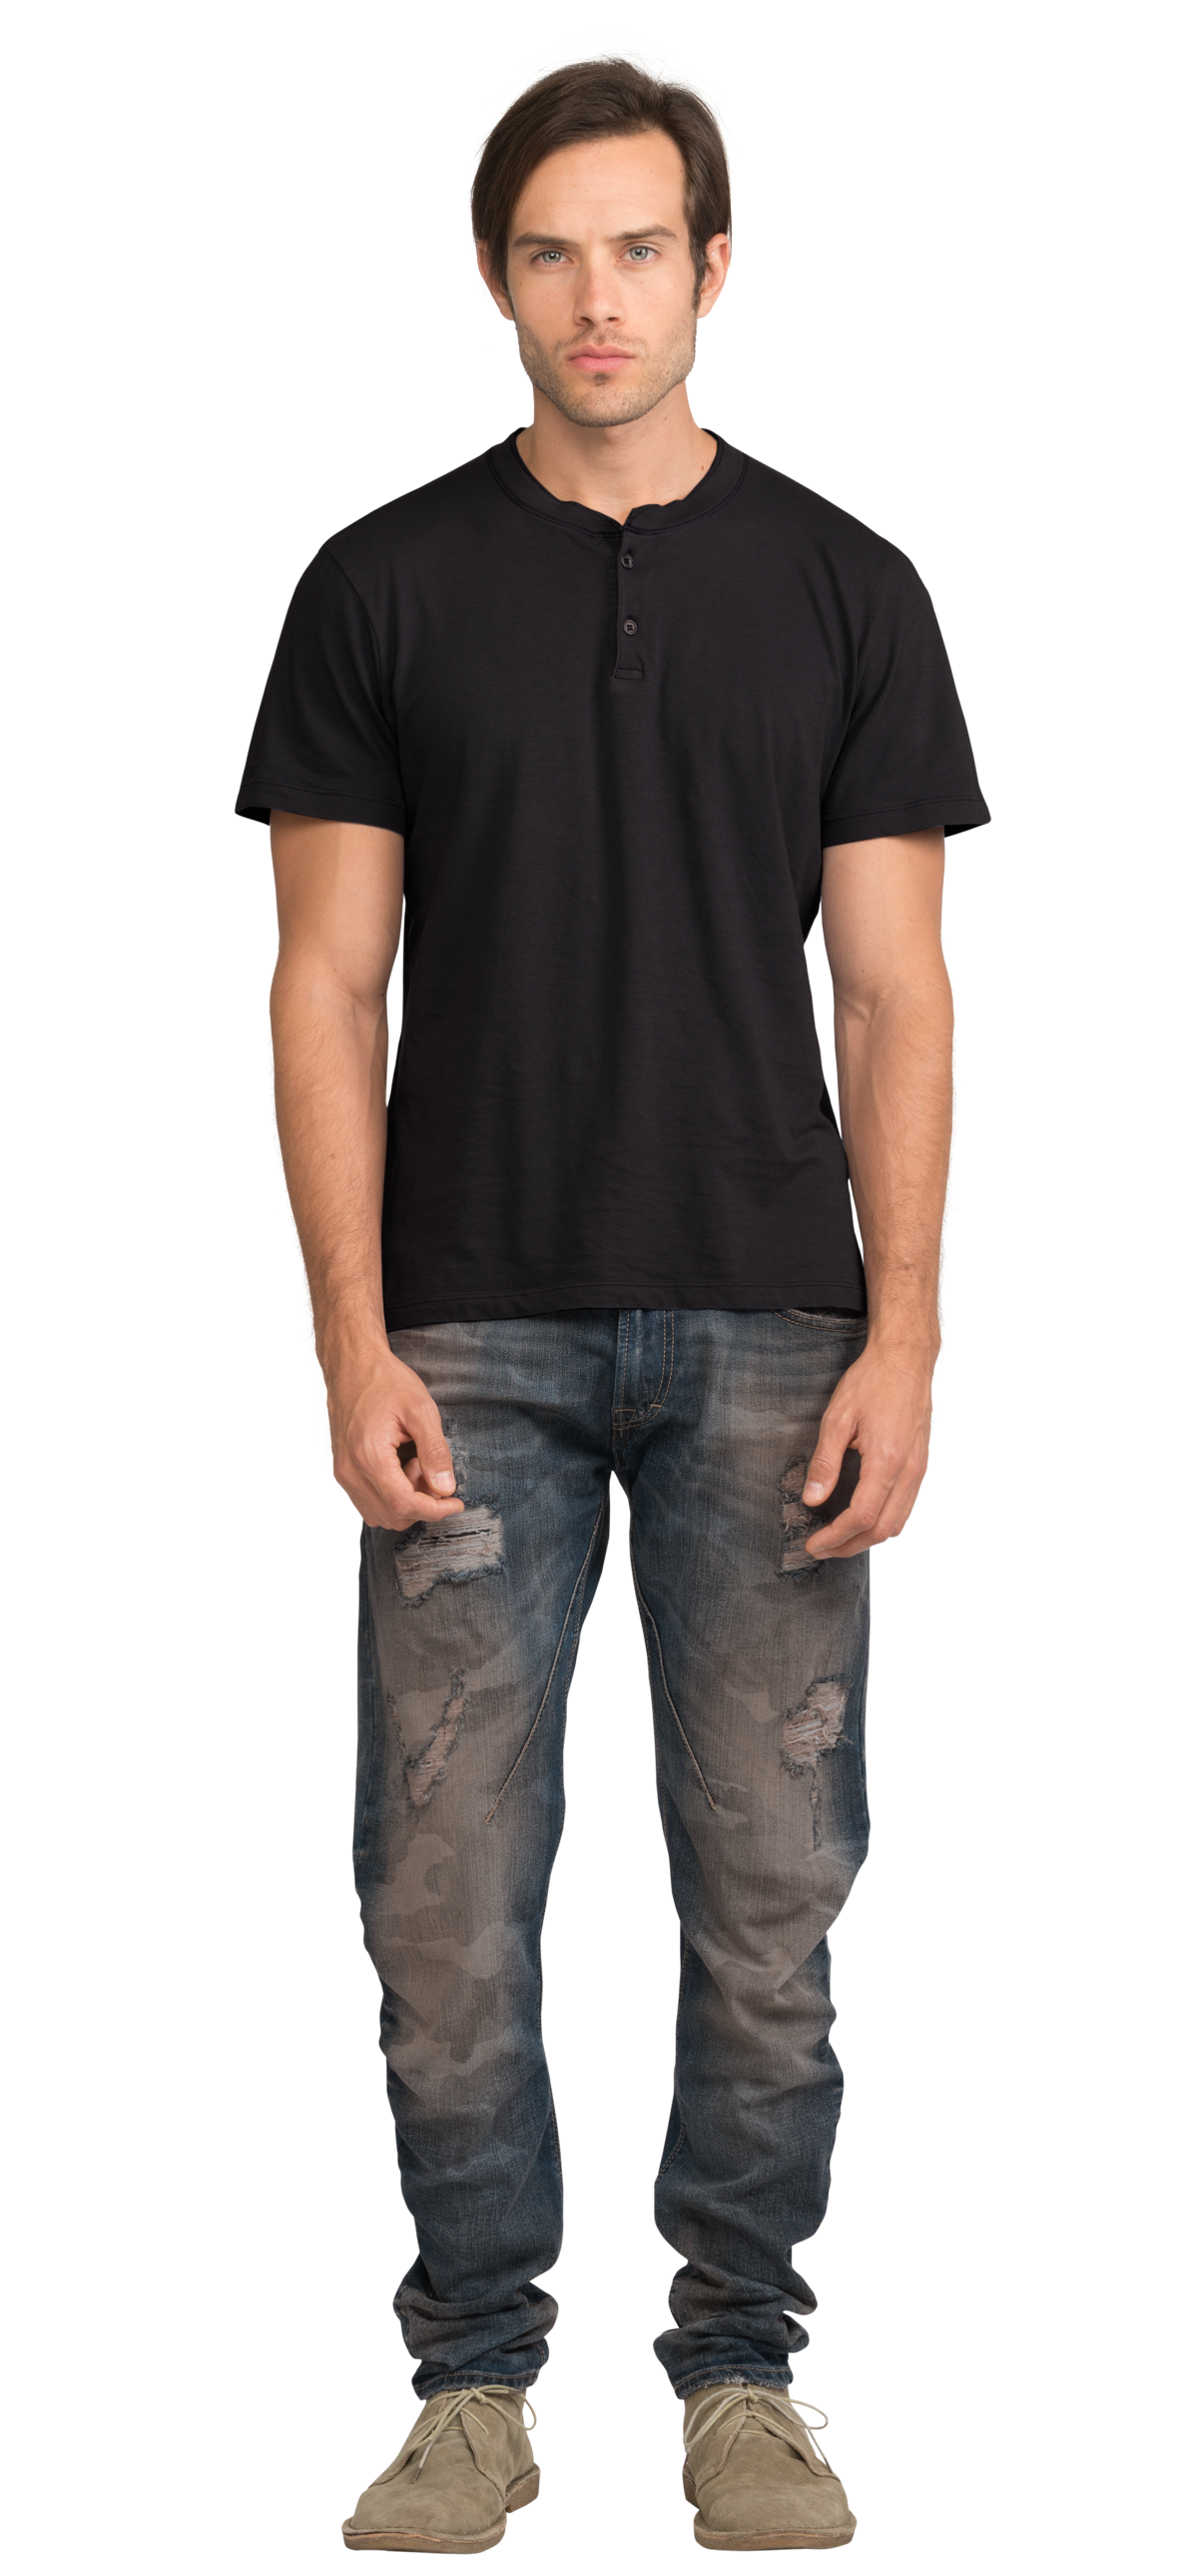 Black t shirt man - Neushop Man Loewy Cotton T Shirt Black